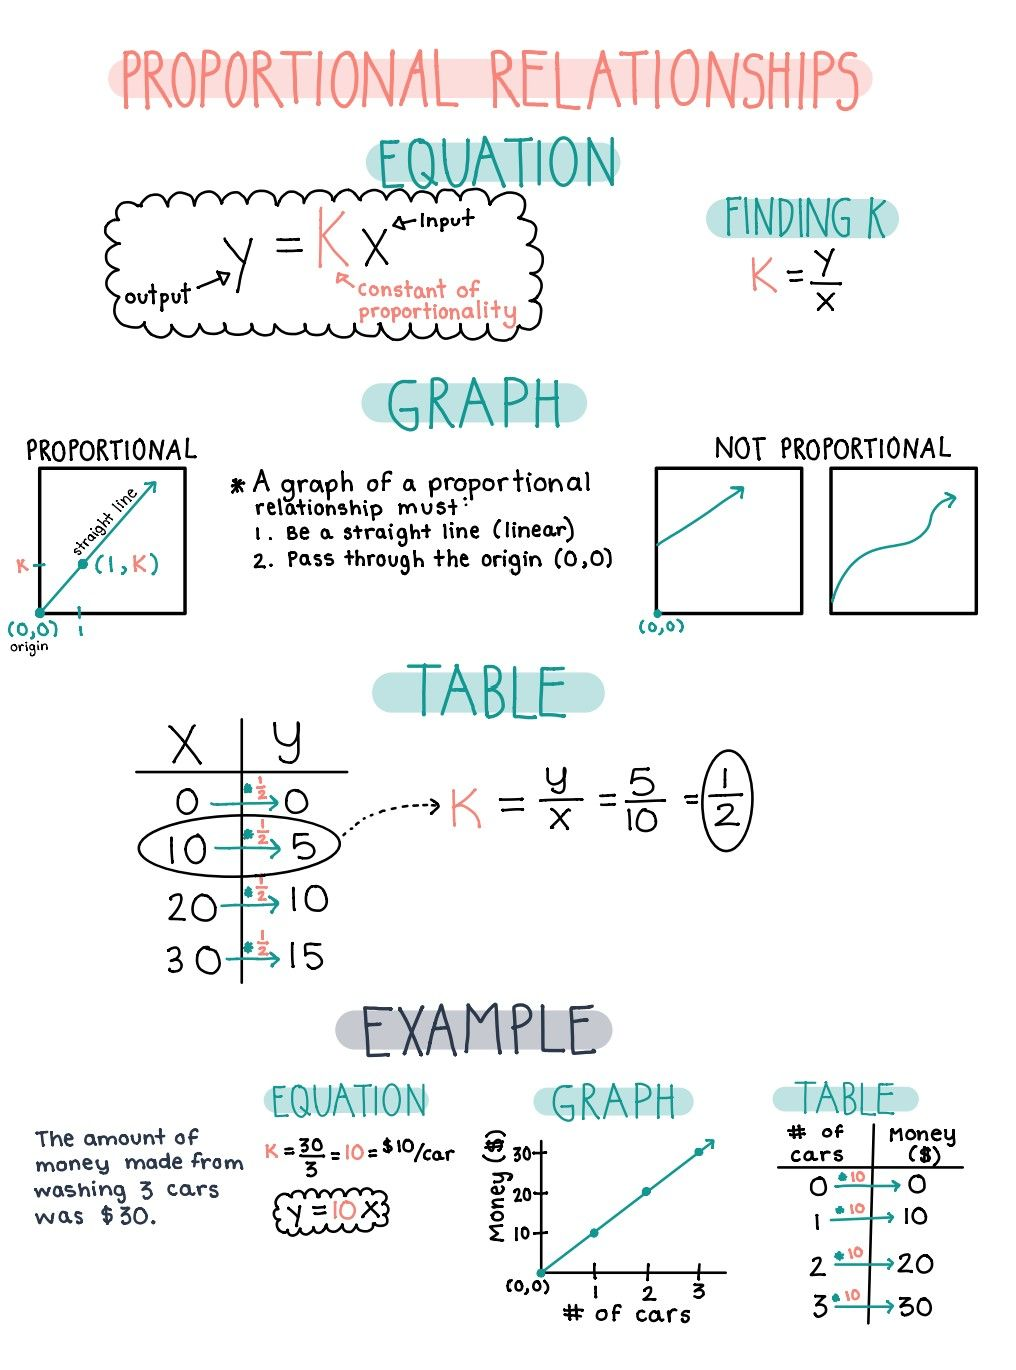 Proportional Relationships Notes Reference Sheet Or Anchor Chart Math Notes Algebra Notes School Organization Notes